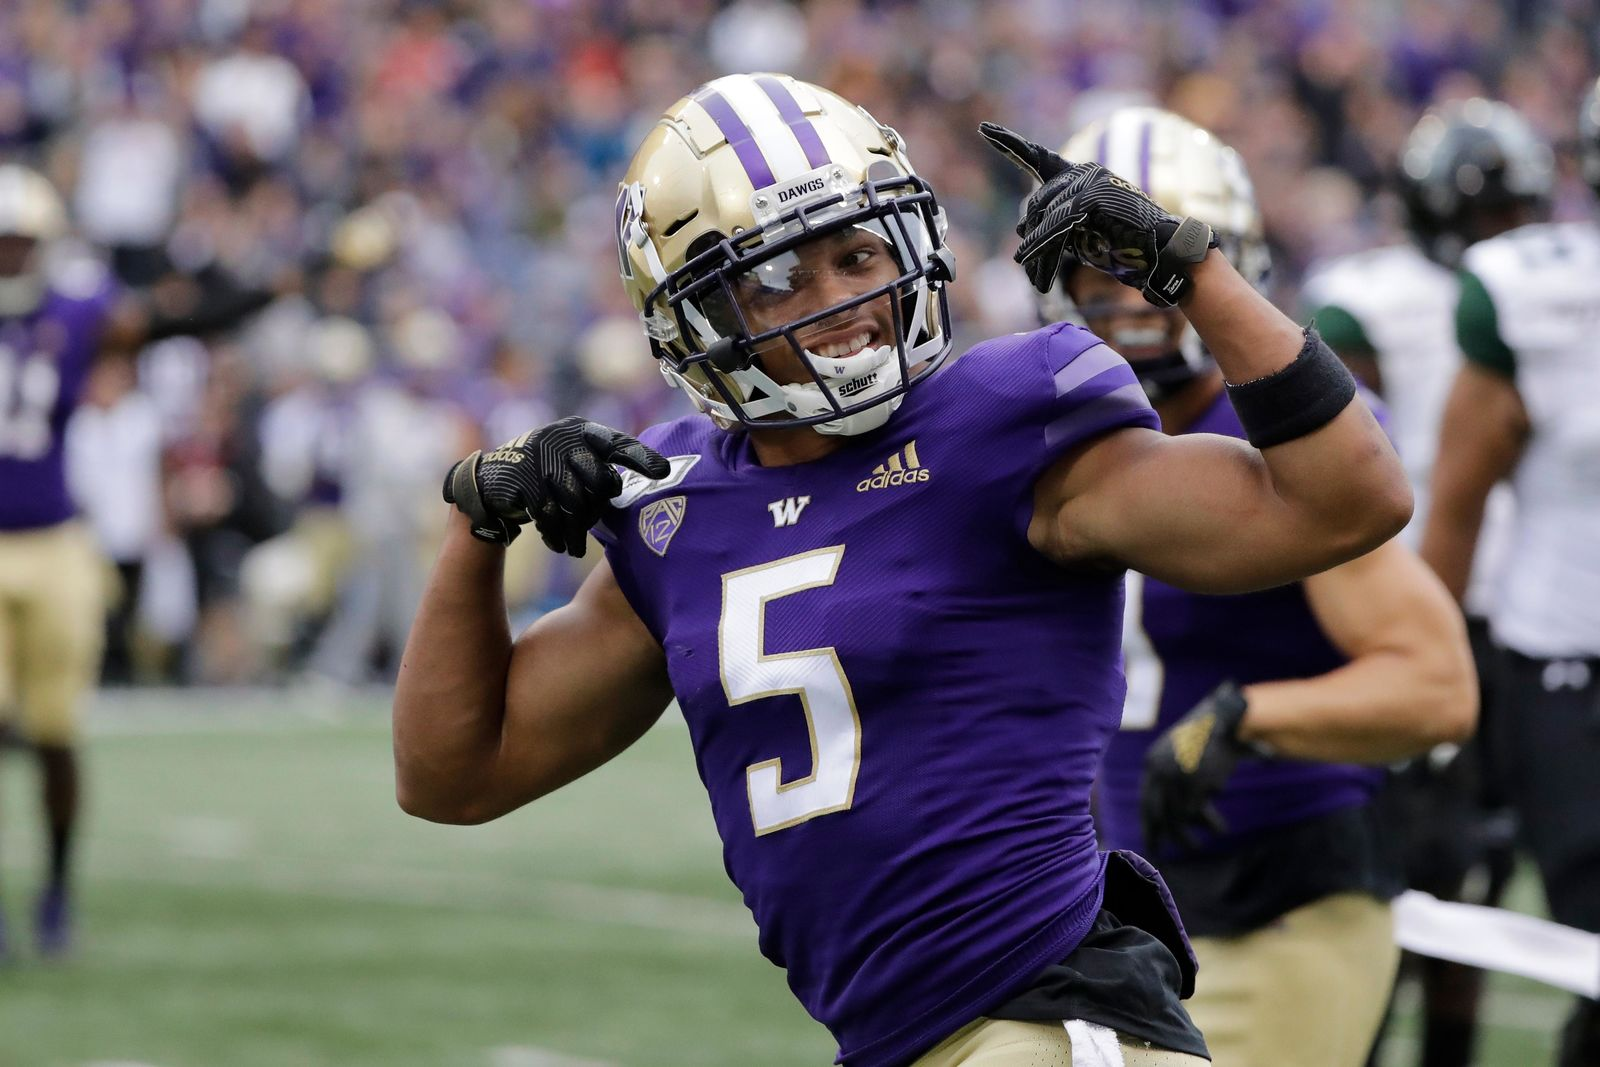 Washington defensive back Myles Bryant celebrates after he intercepted a pass against Hawaii during the first half of an NCAA college football game, Saturday, Sept. 14, 2019, in Seattle. (AP Photo/Ted S. Warren)